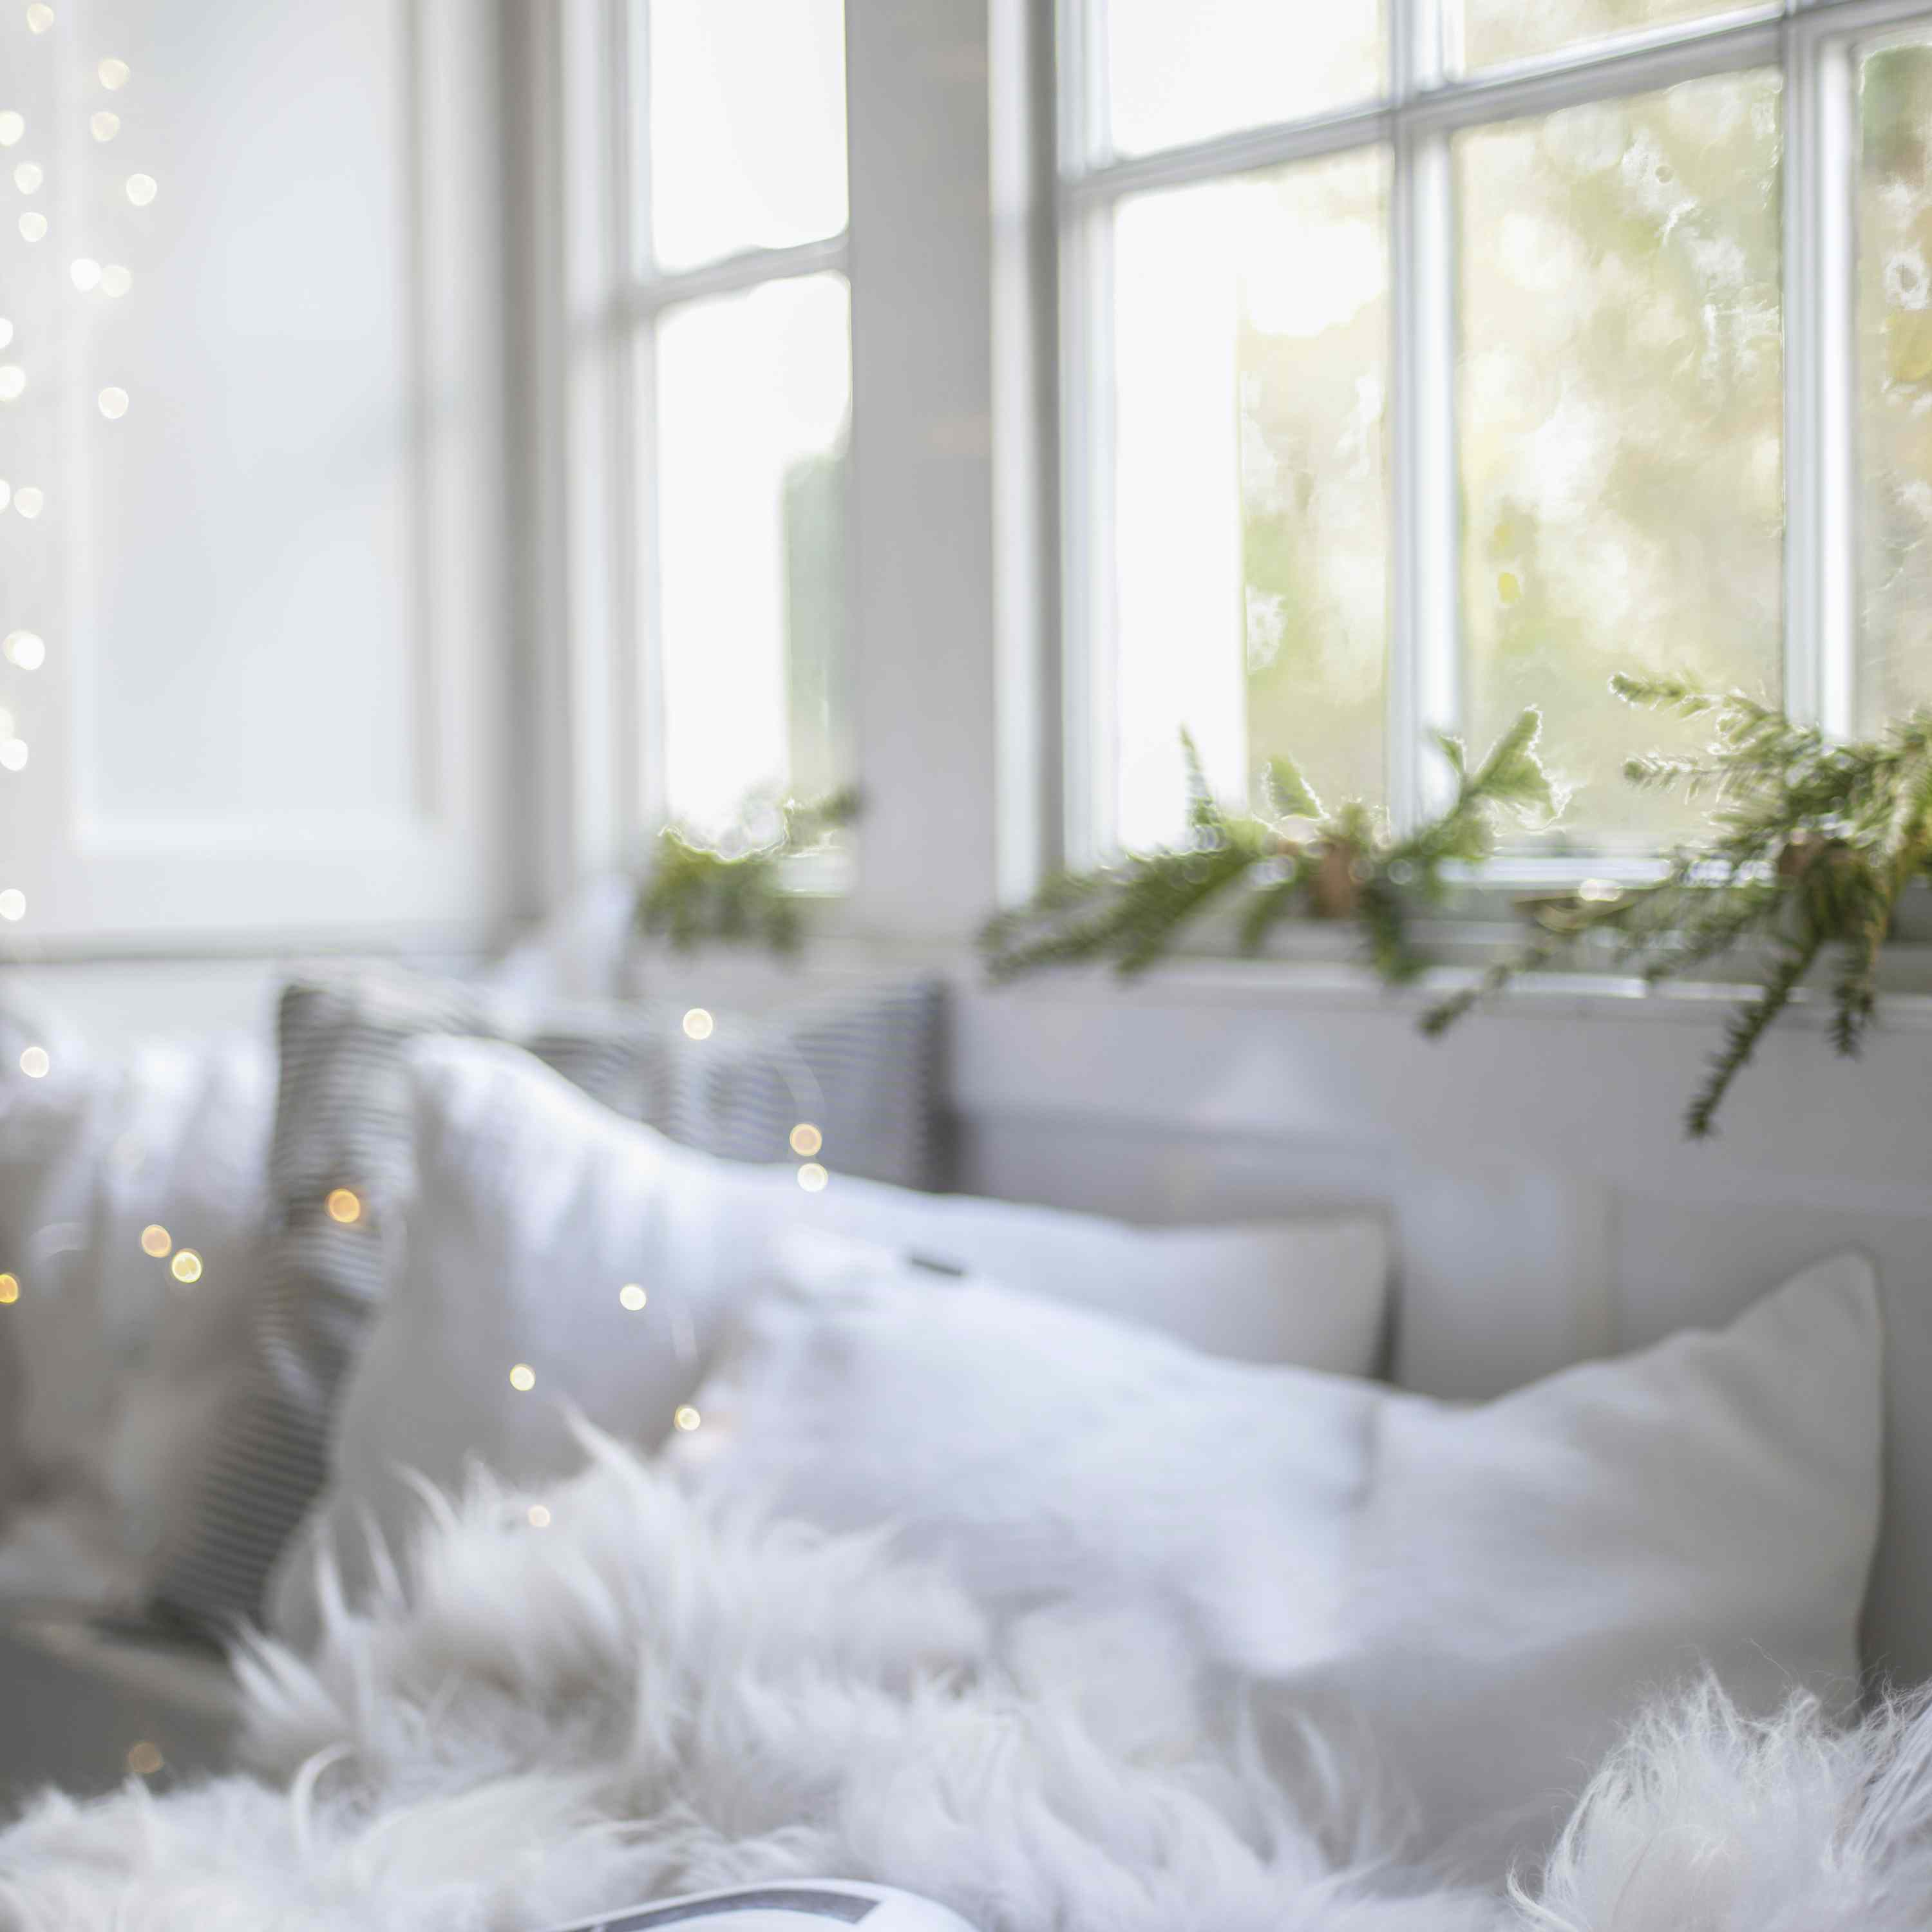 White cozy bedroom with pine accents.